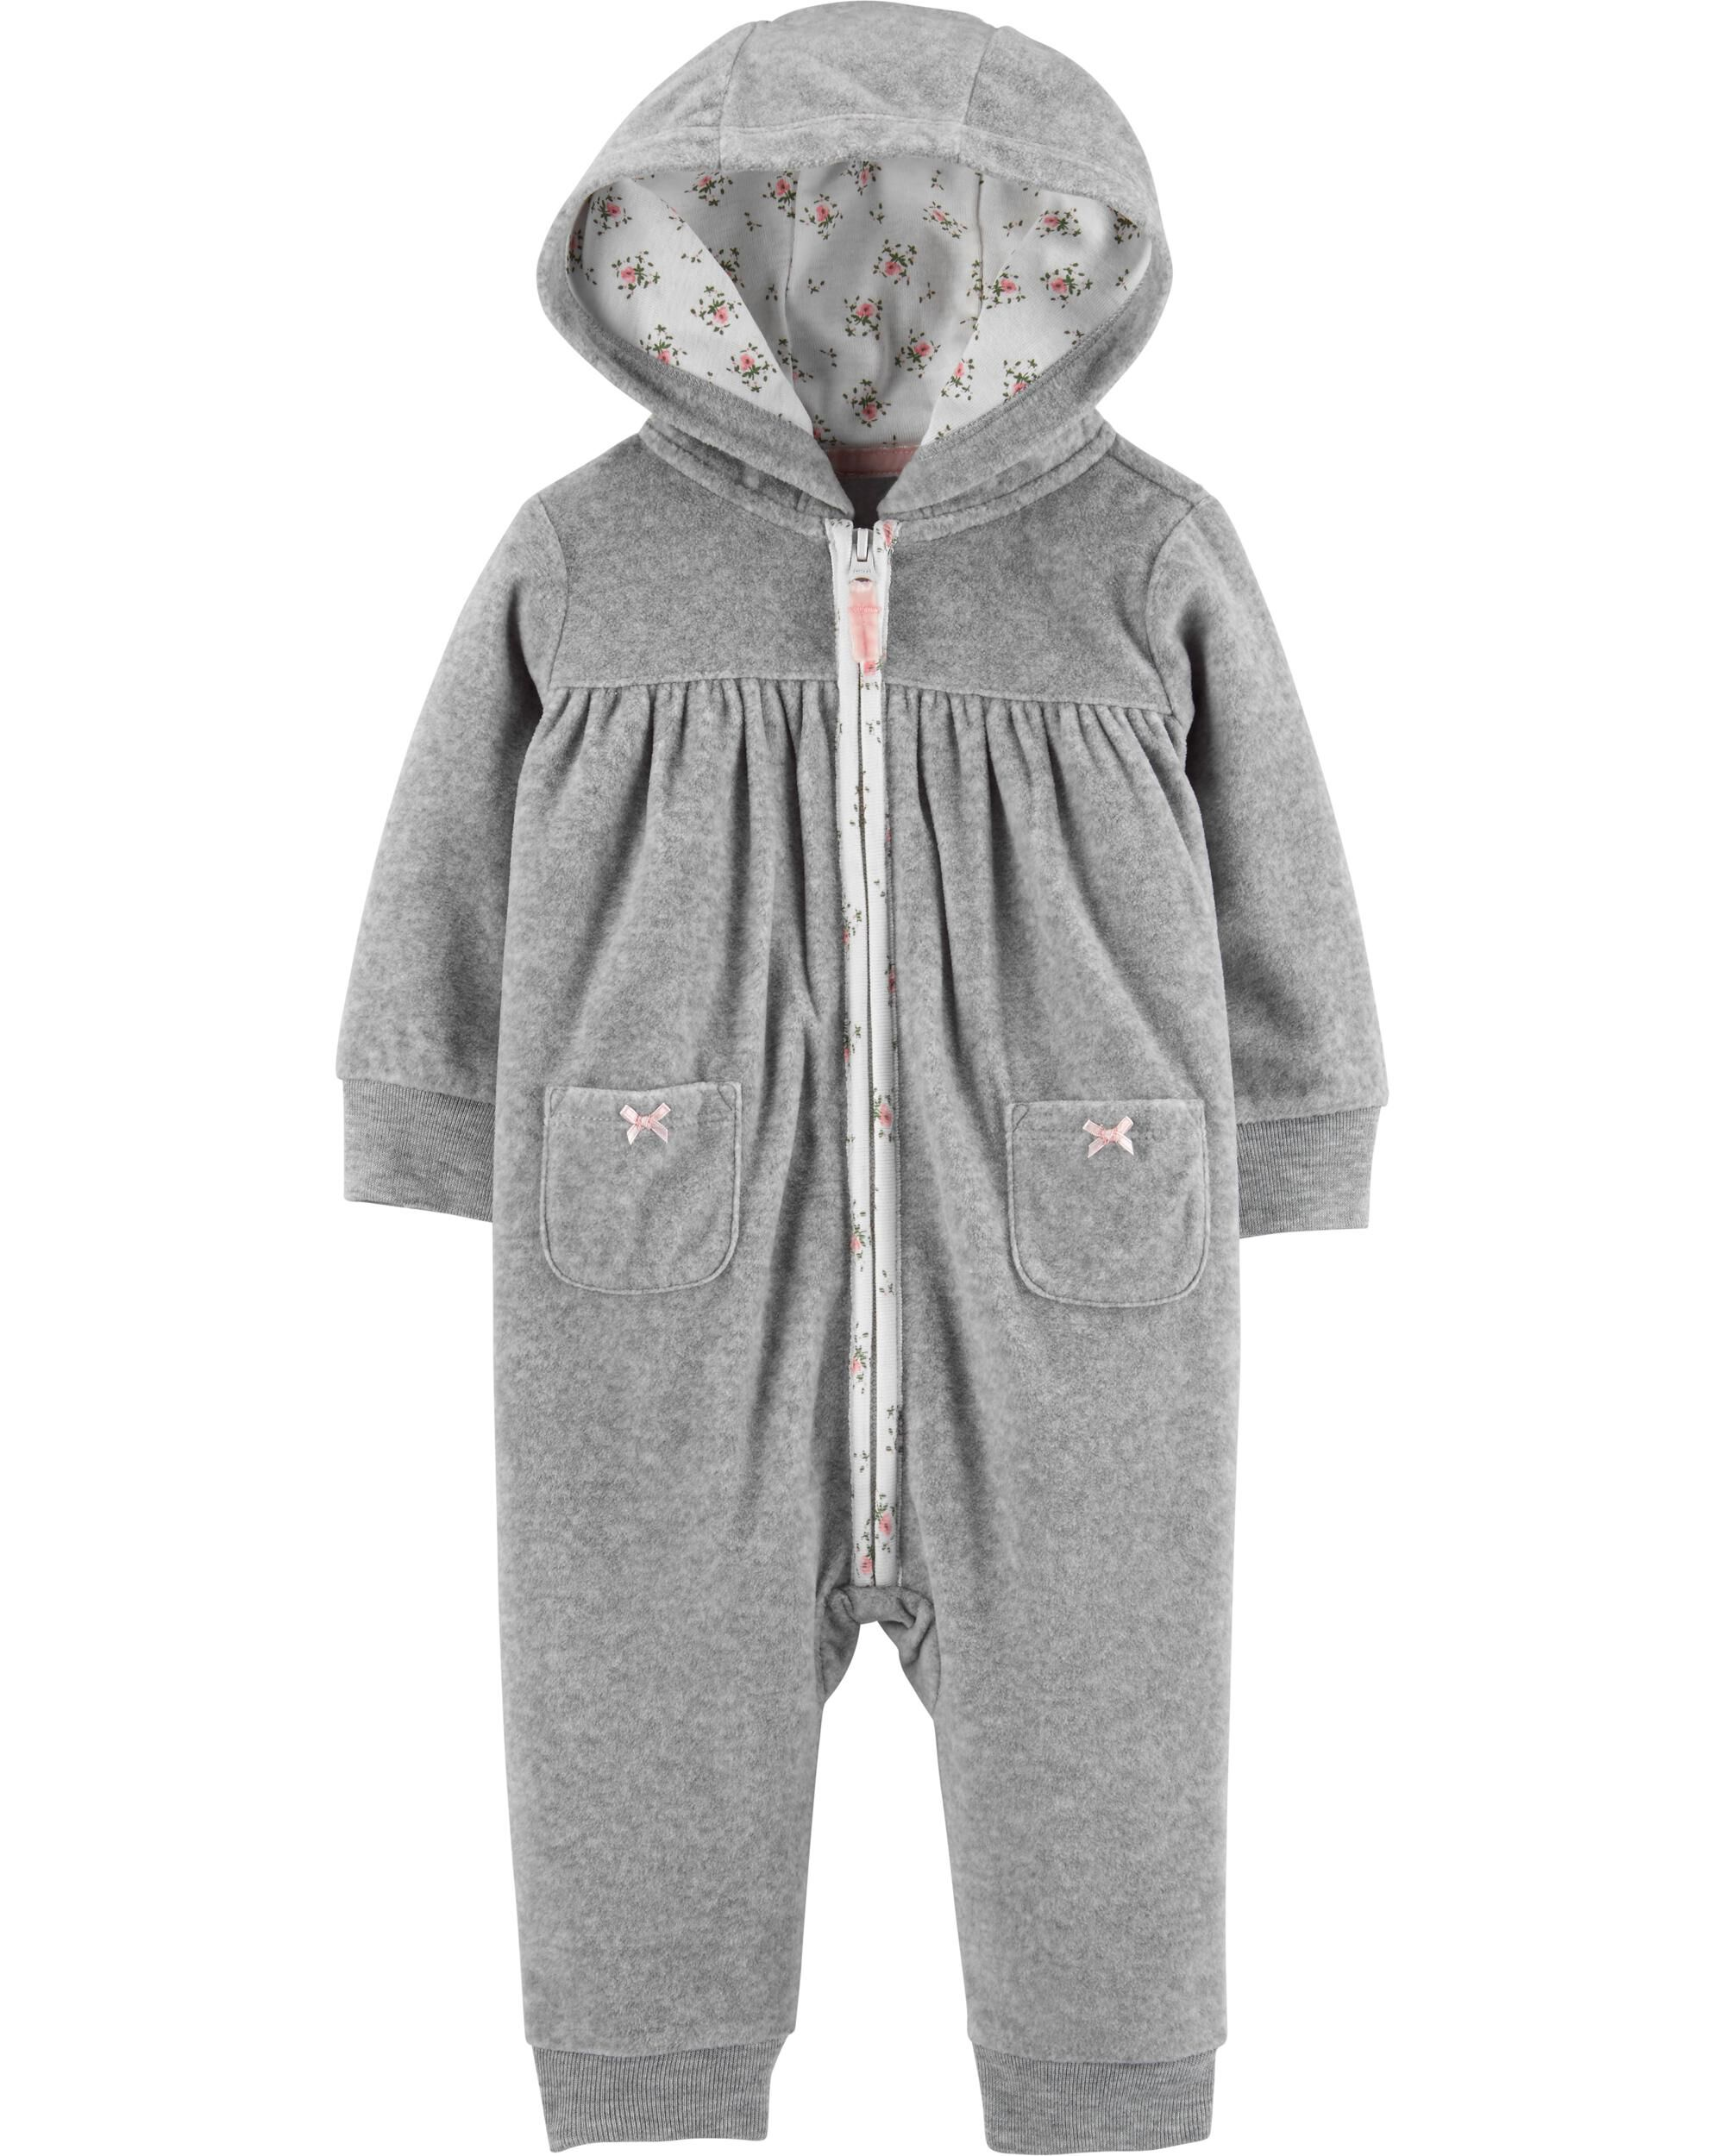 Carters Baby Button up Coveralls